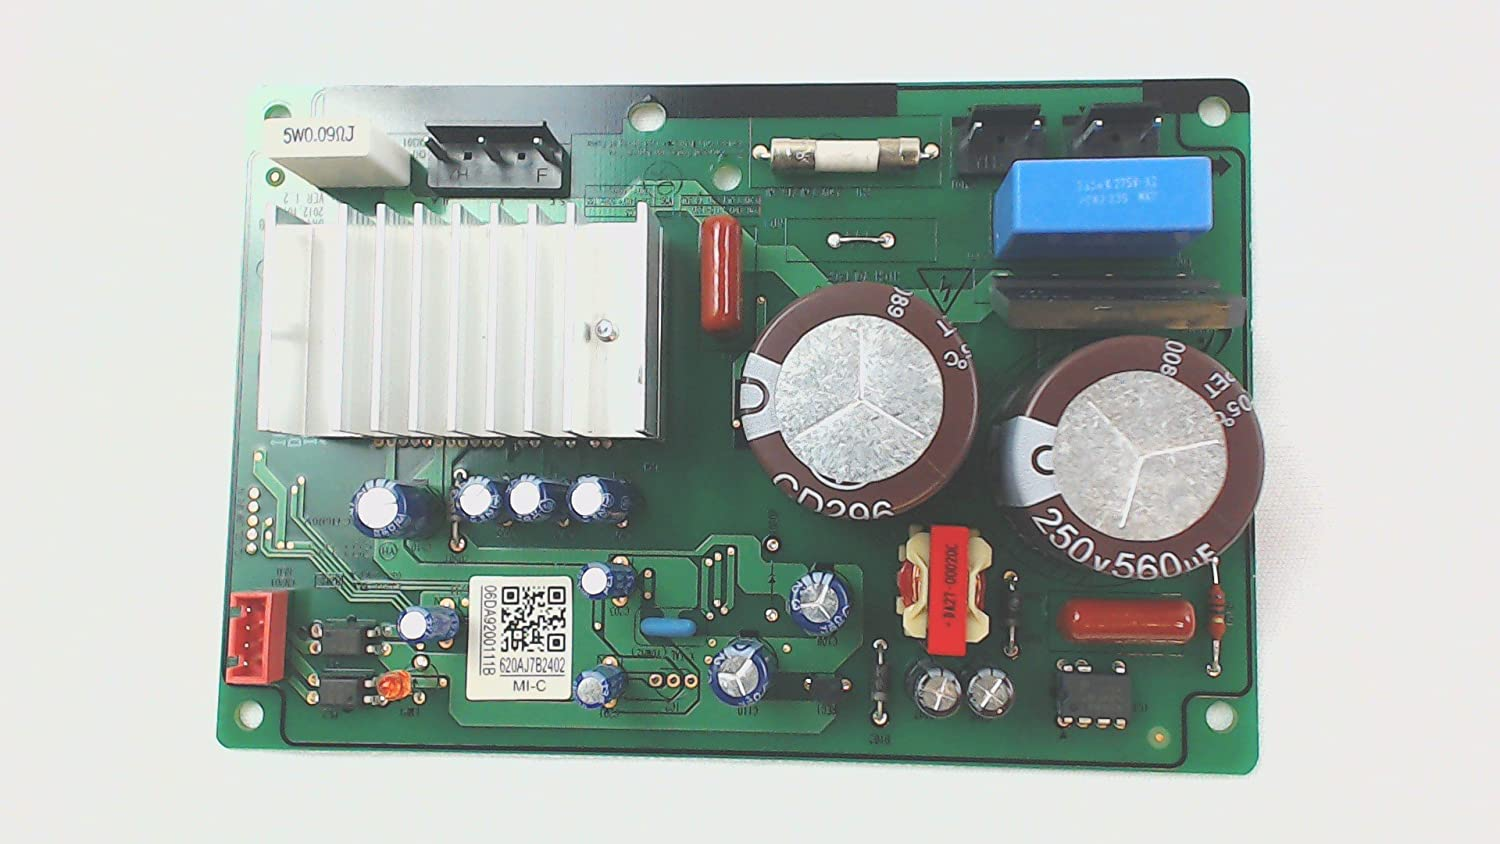 Samsung DA92-00111B Refrigerator Inverter Power Control Board Genuine Original Equipment Manufacturer (OEM) Part